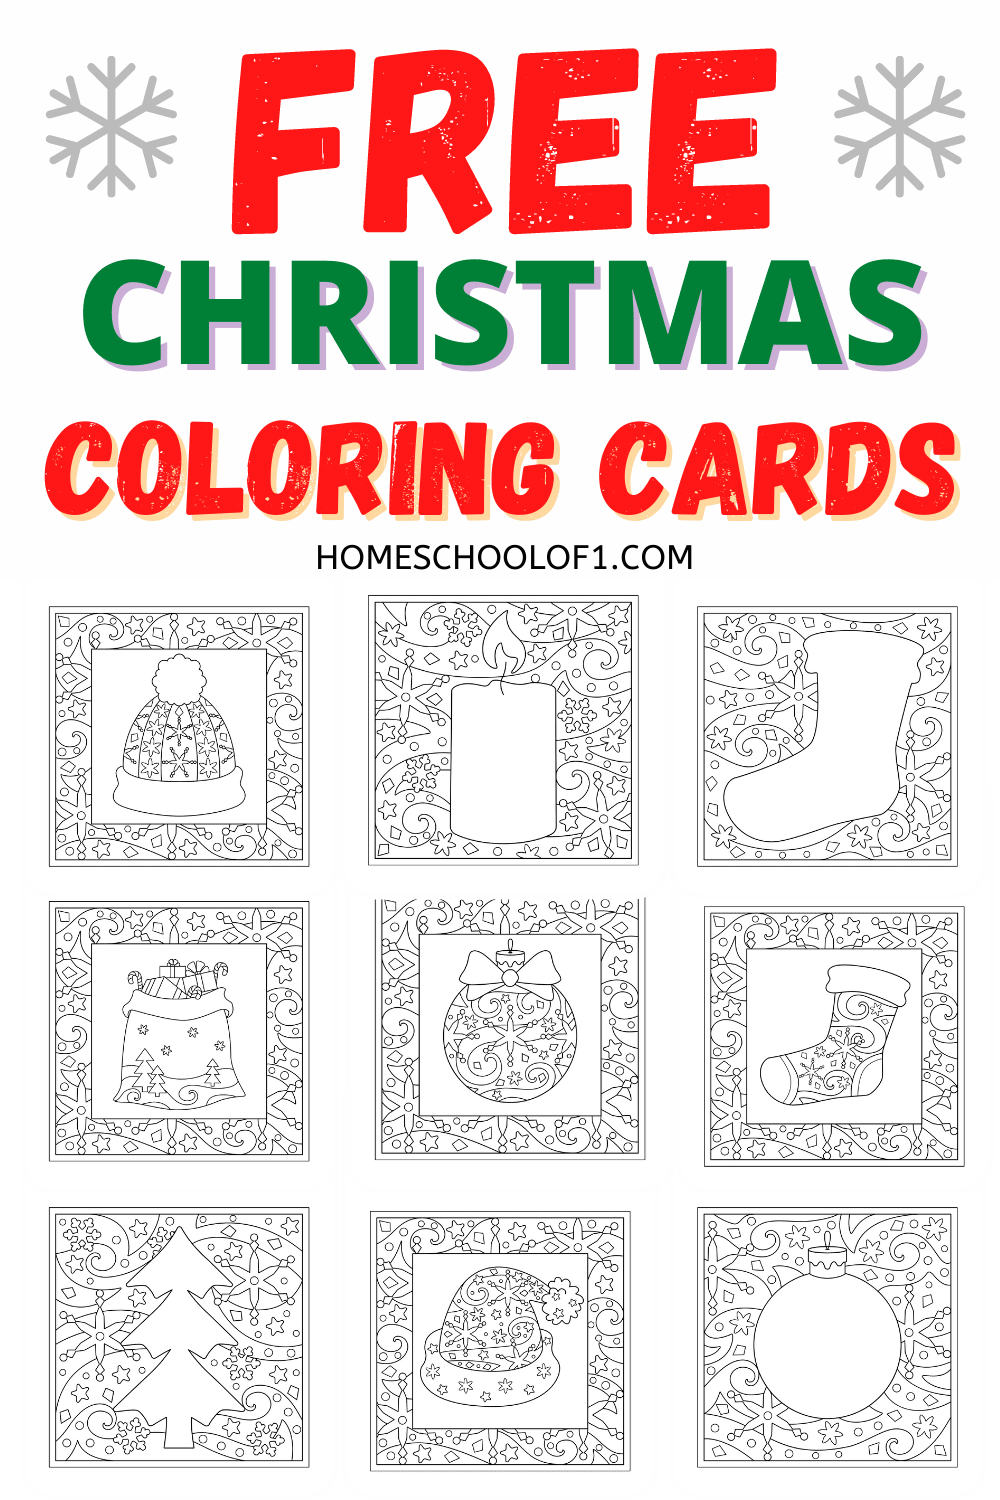 Free Christmas coloring in cards perfect for both kids and adults. Create your own homemade Christmas cards for FREE. #christmascards #christmashomemade